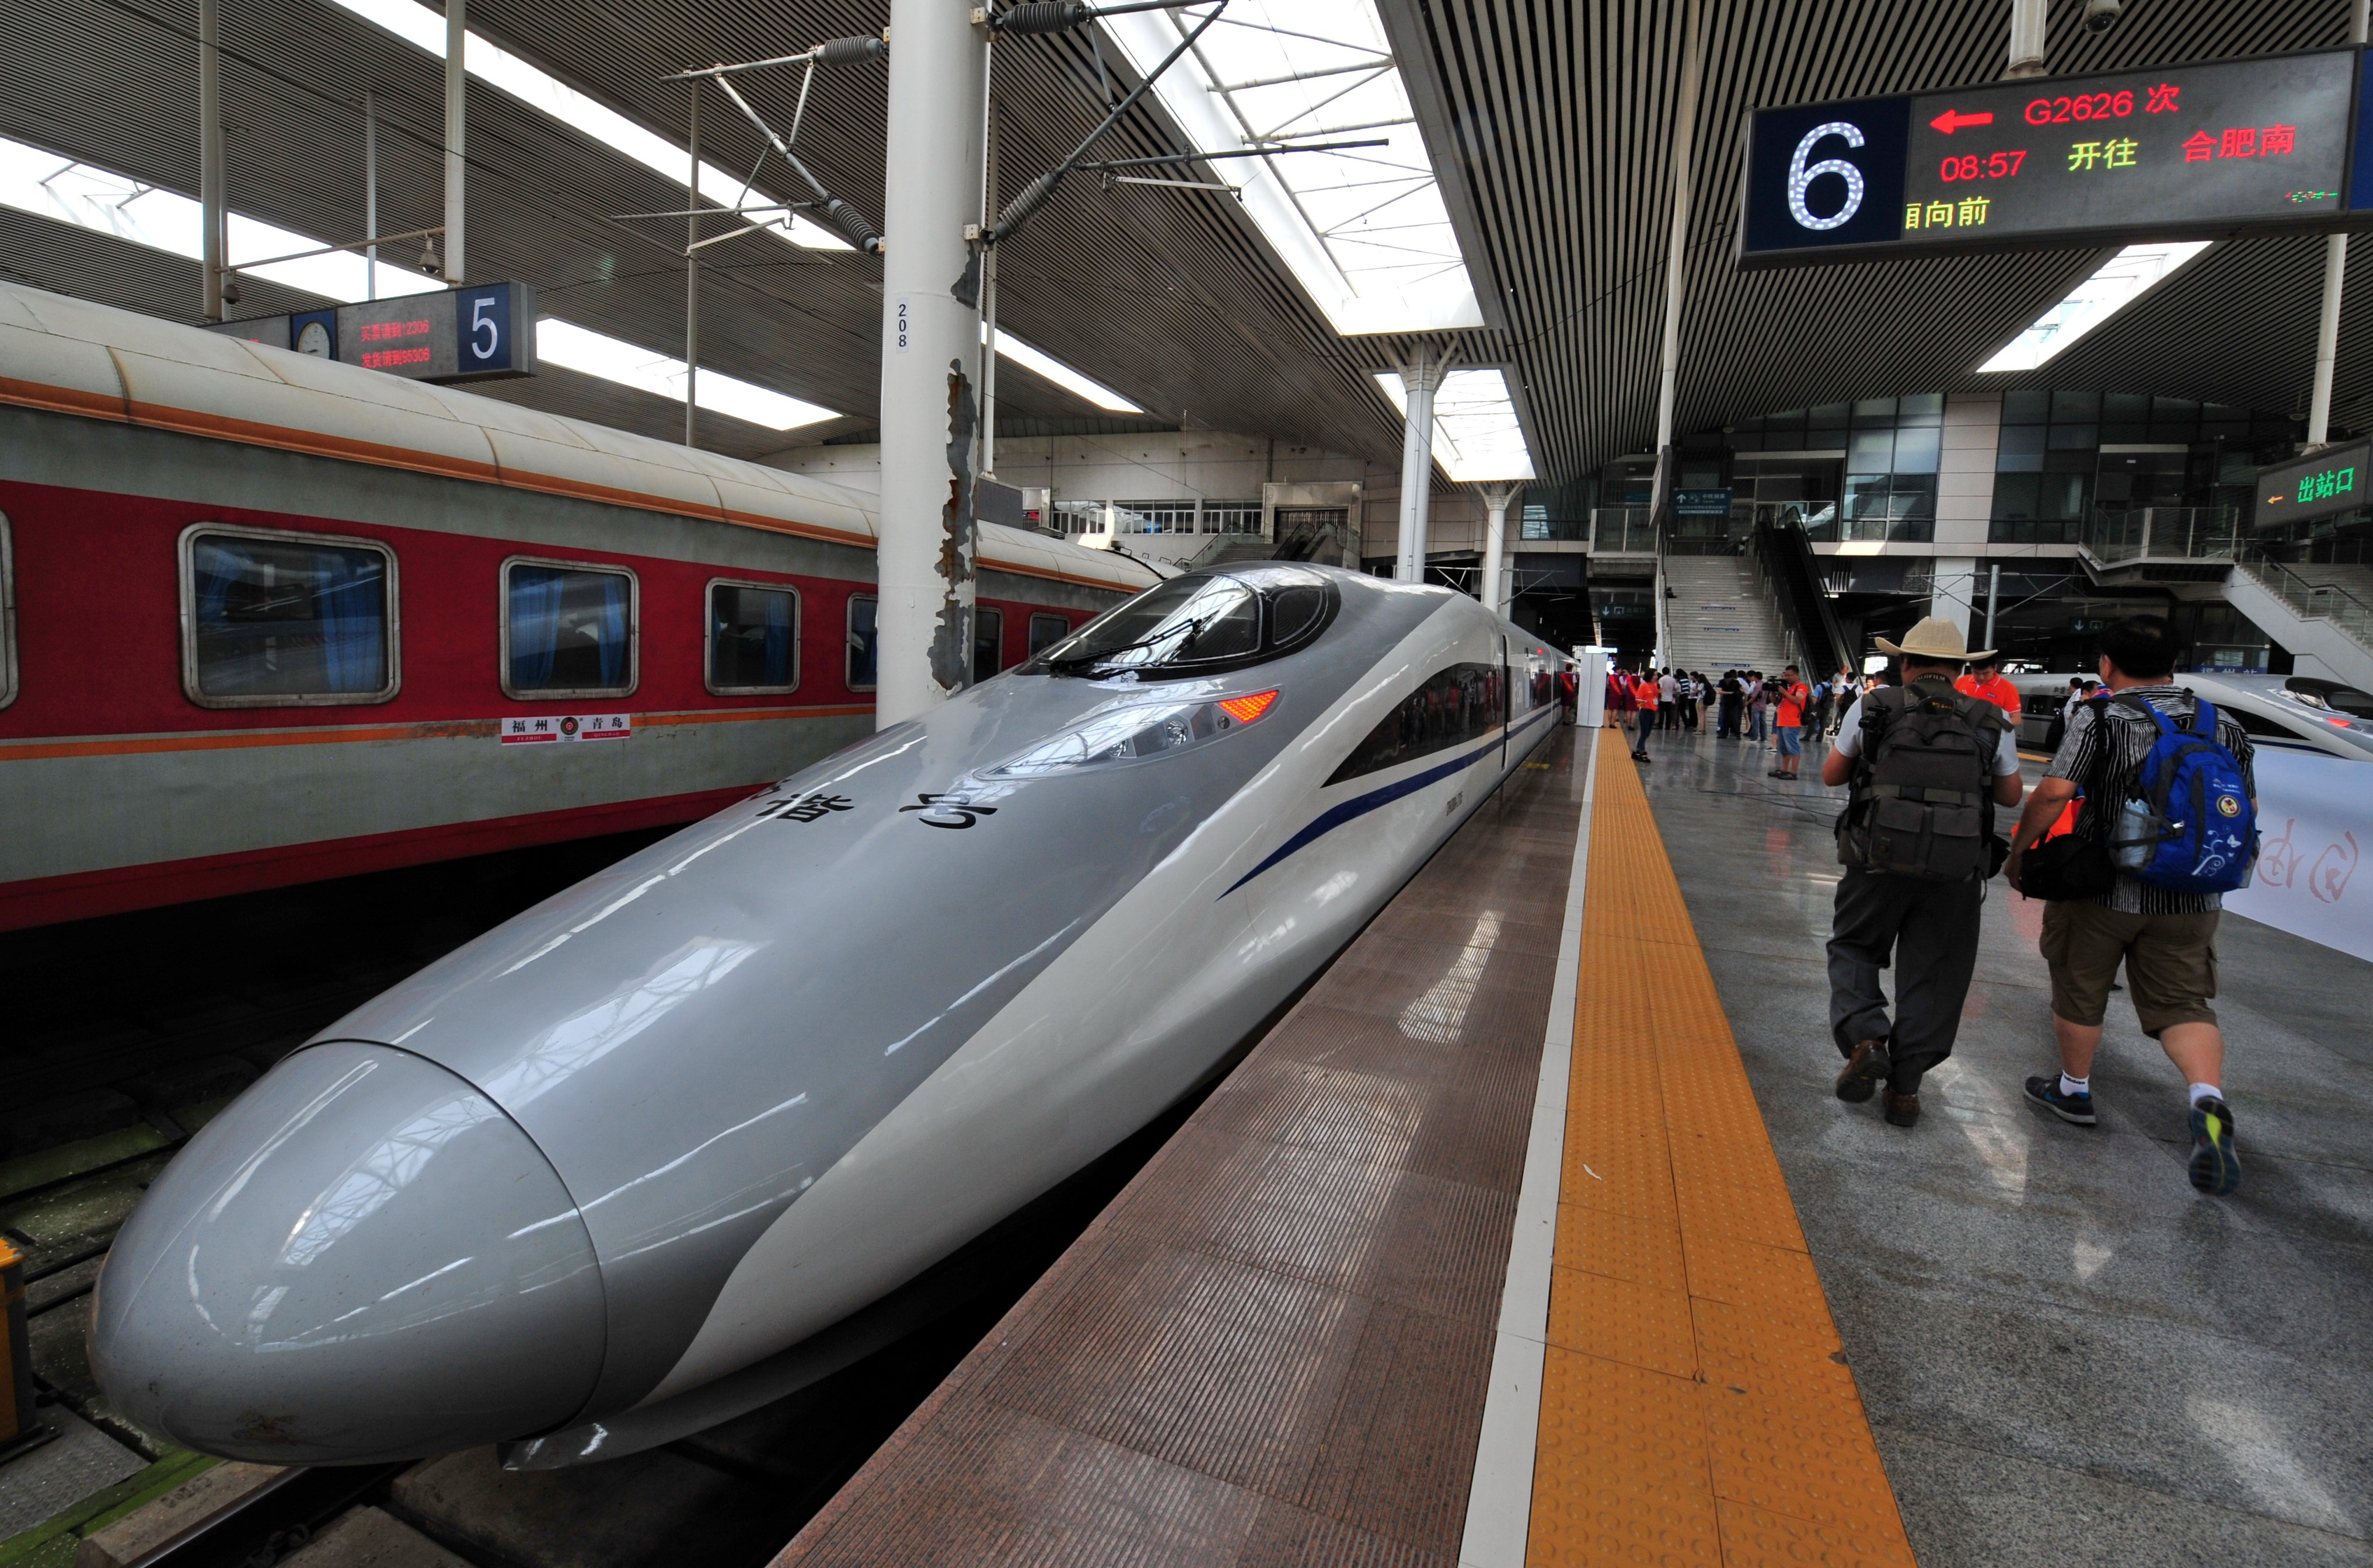 China, Indonesia sign high-speed rail line deal | South ...